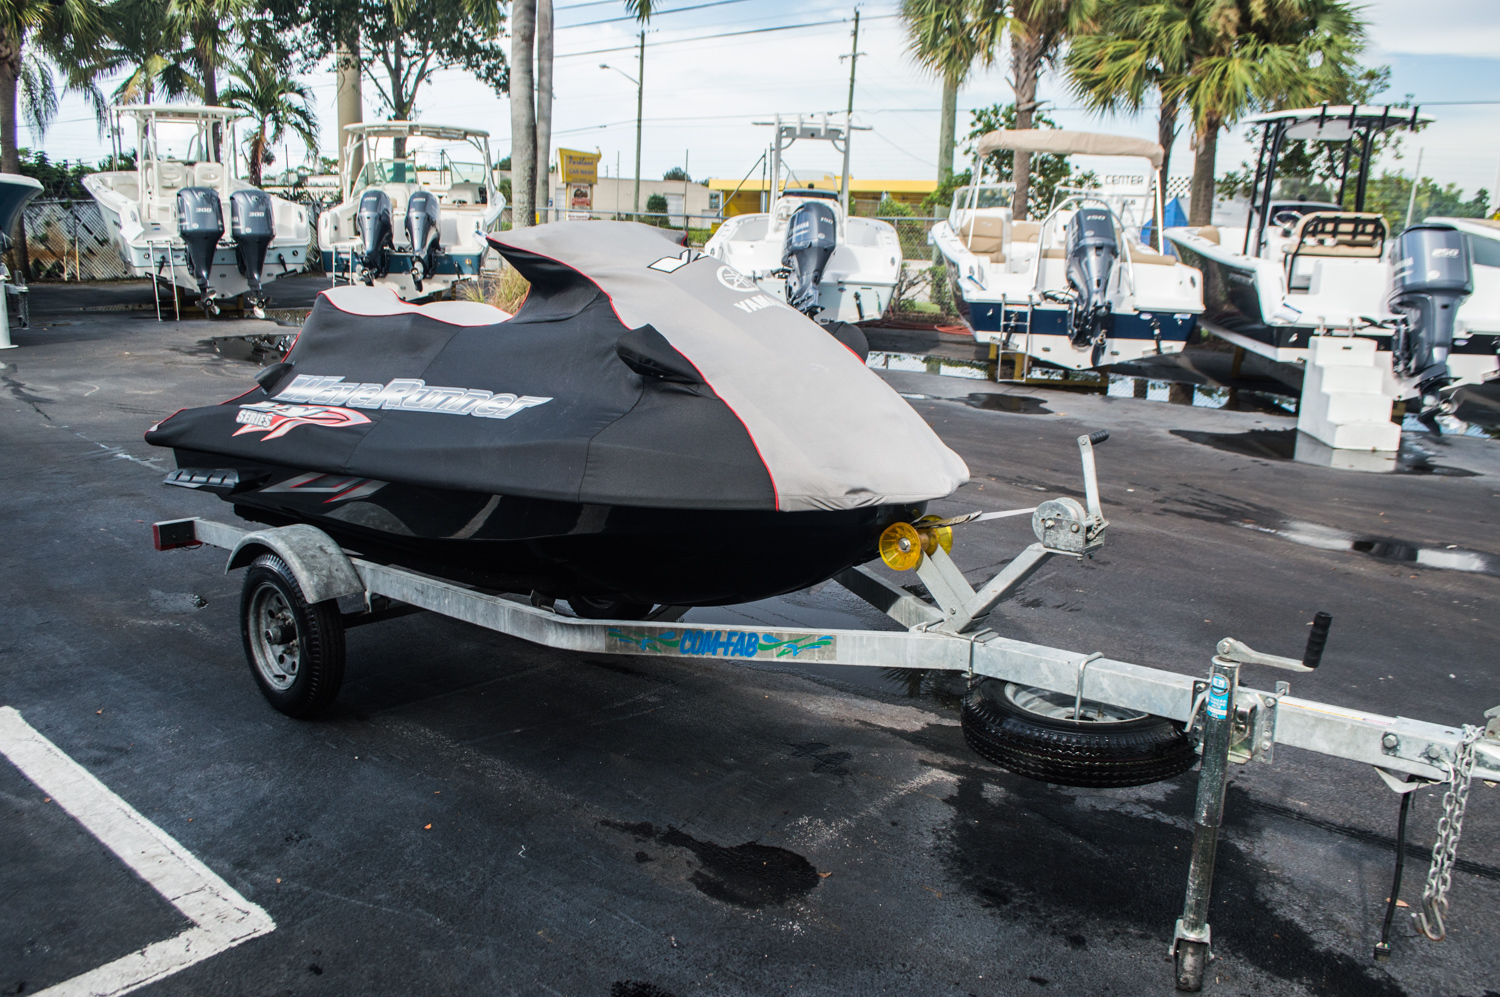 Thumbnail 18 for Used 2007 Yamaha VX Cruiser boat for sale in West Palm Beach, FL